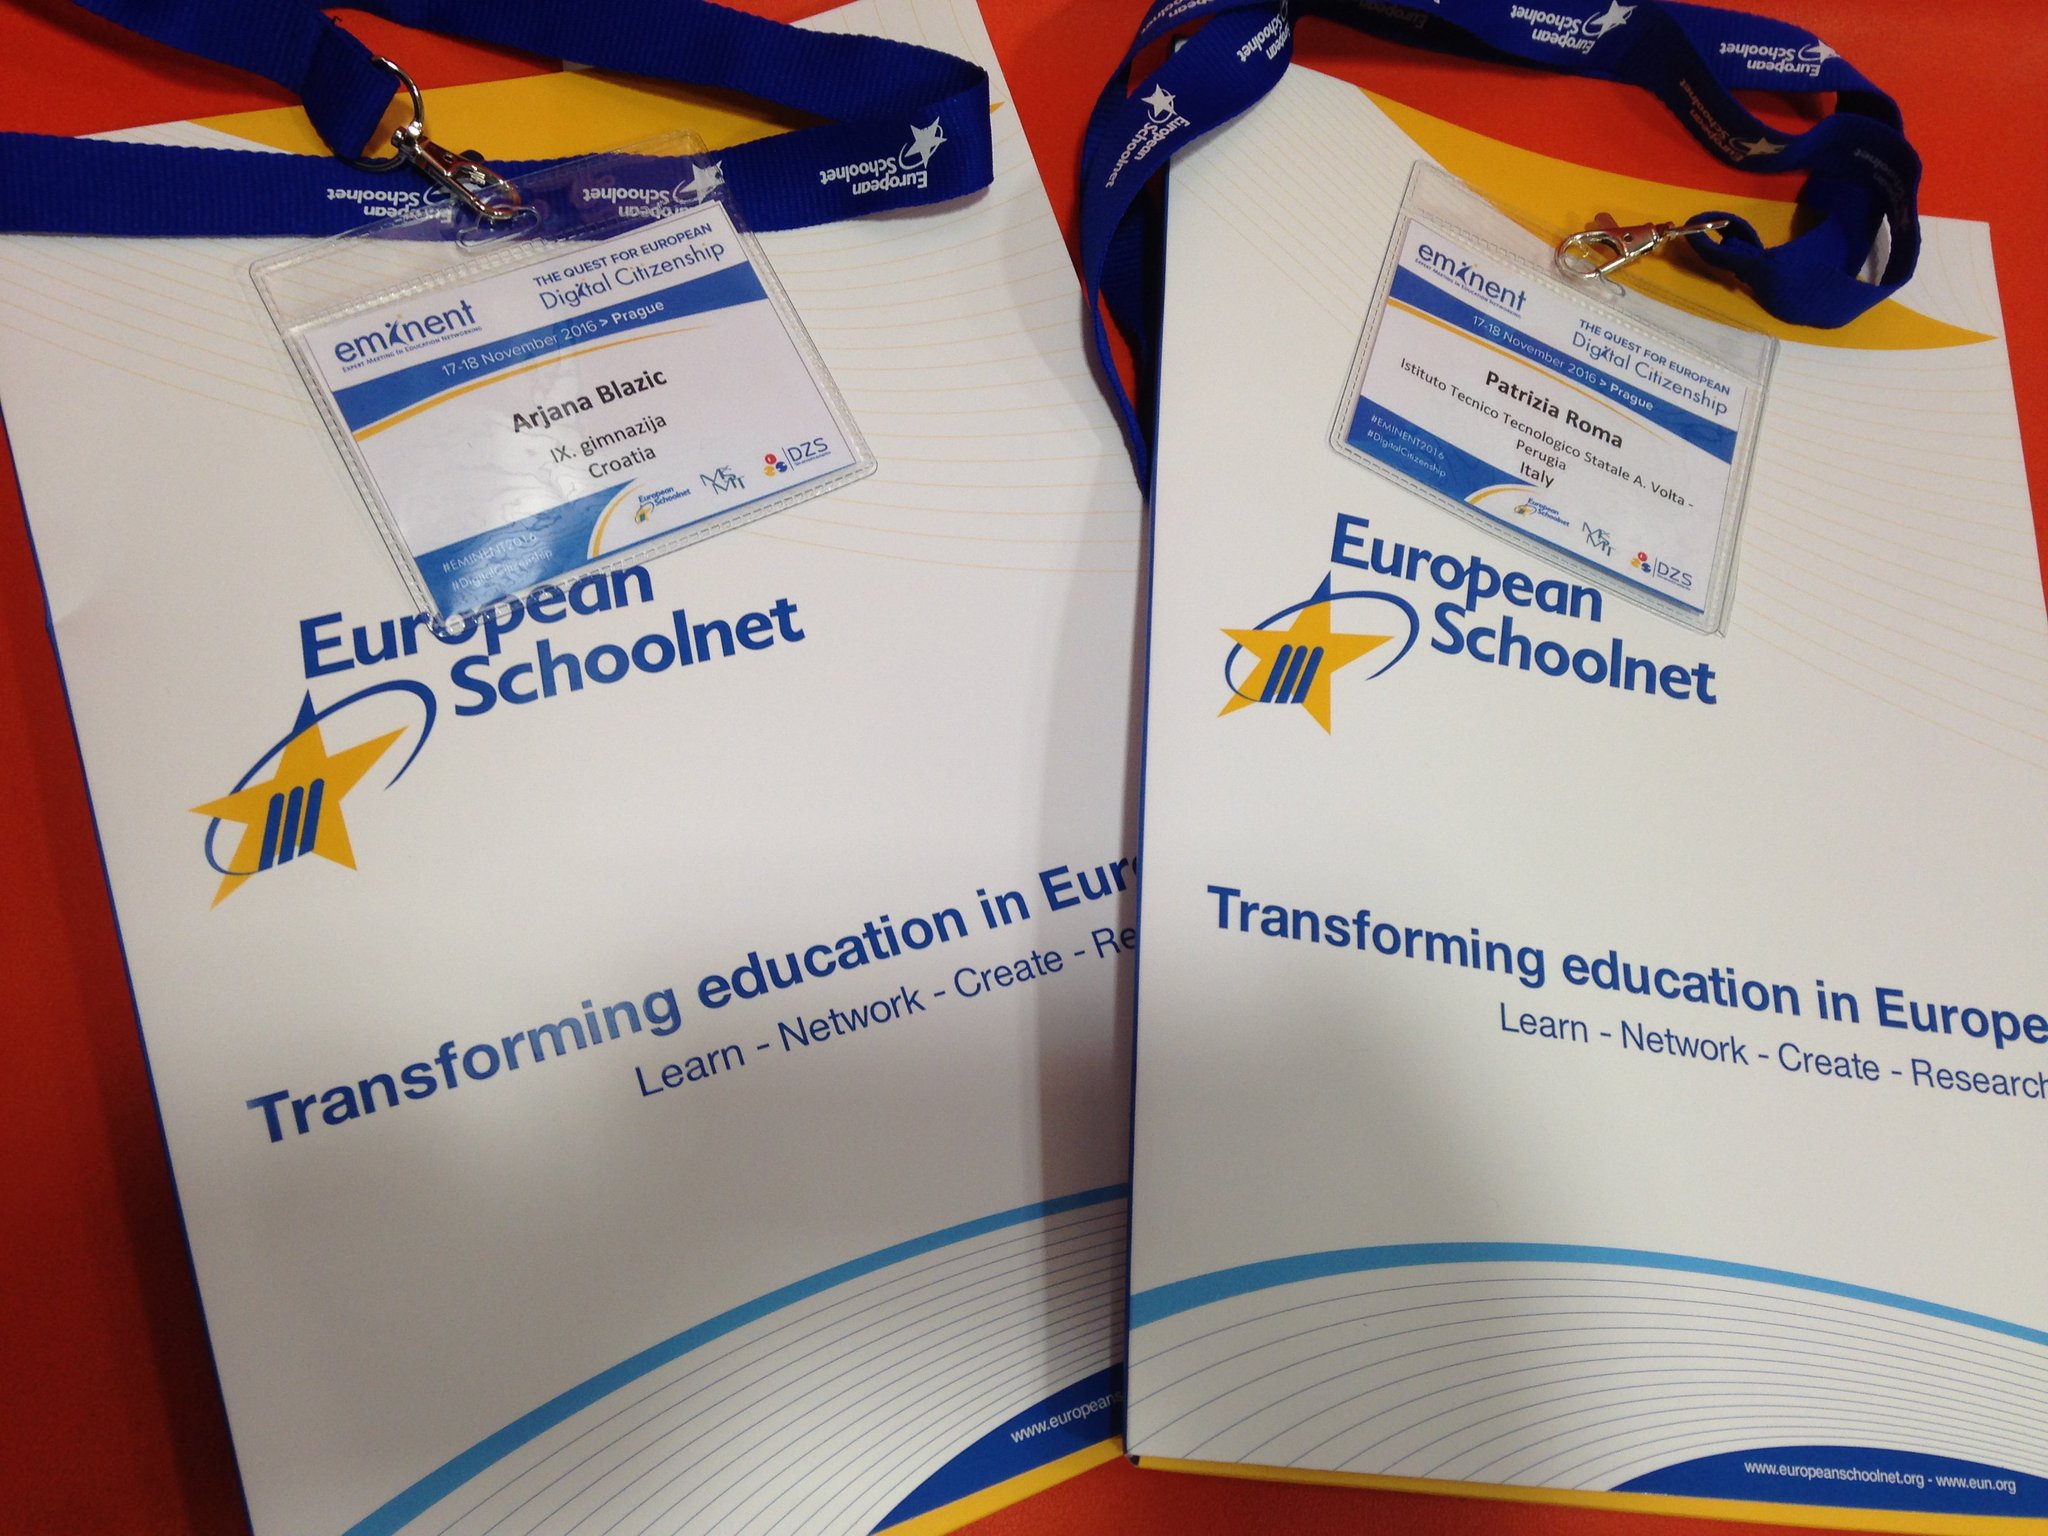 #Eminent2016 is just about to start #eTwinning teachers ready to inspire and be inspired https://t.co/FXk3Y6DKo9